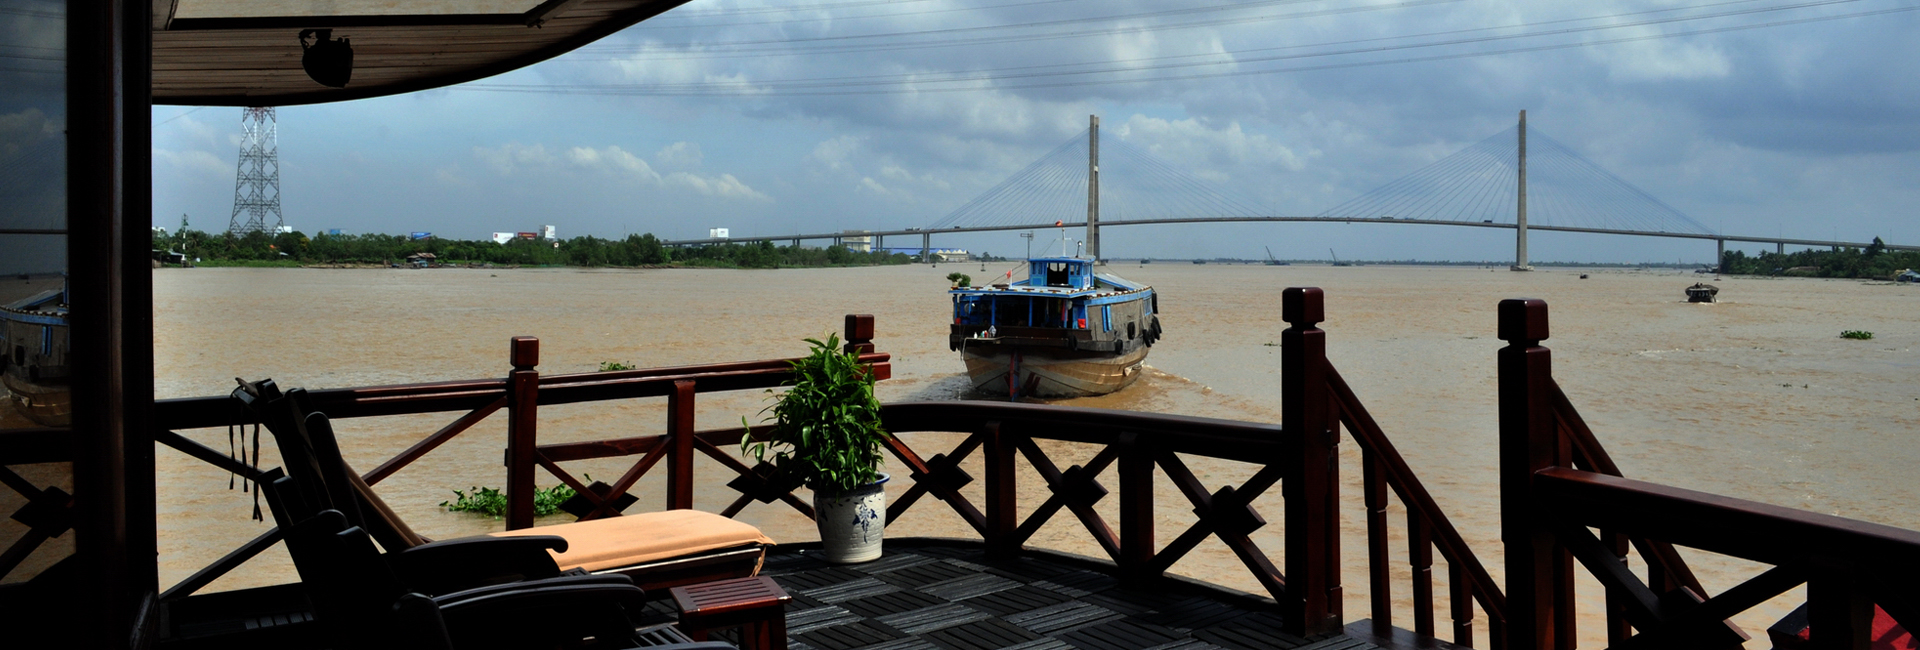 Mekong Emotion Crusie